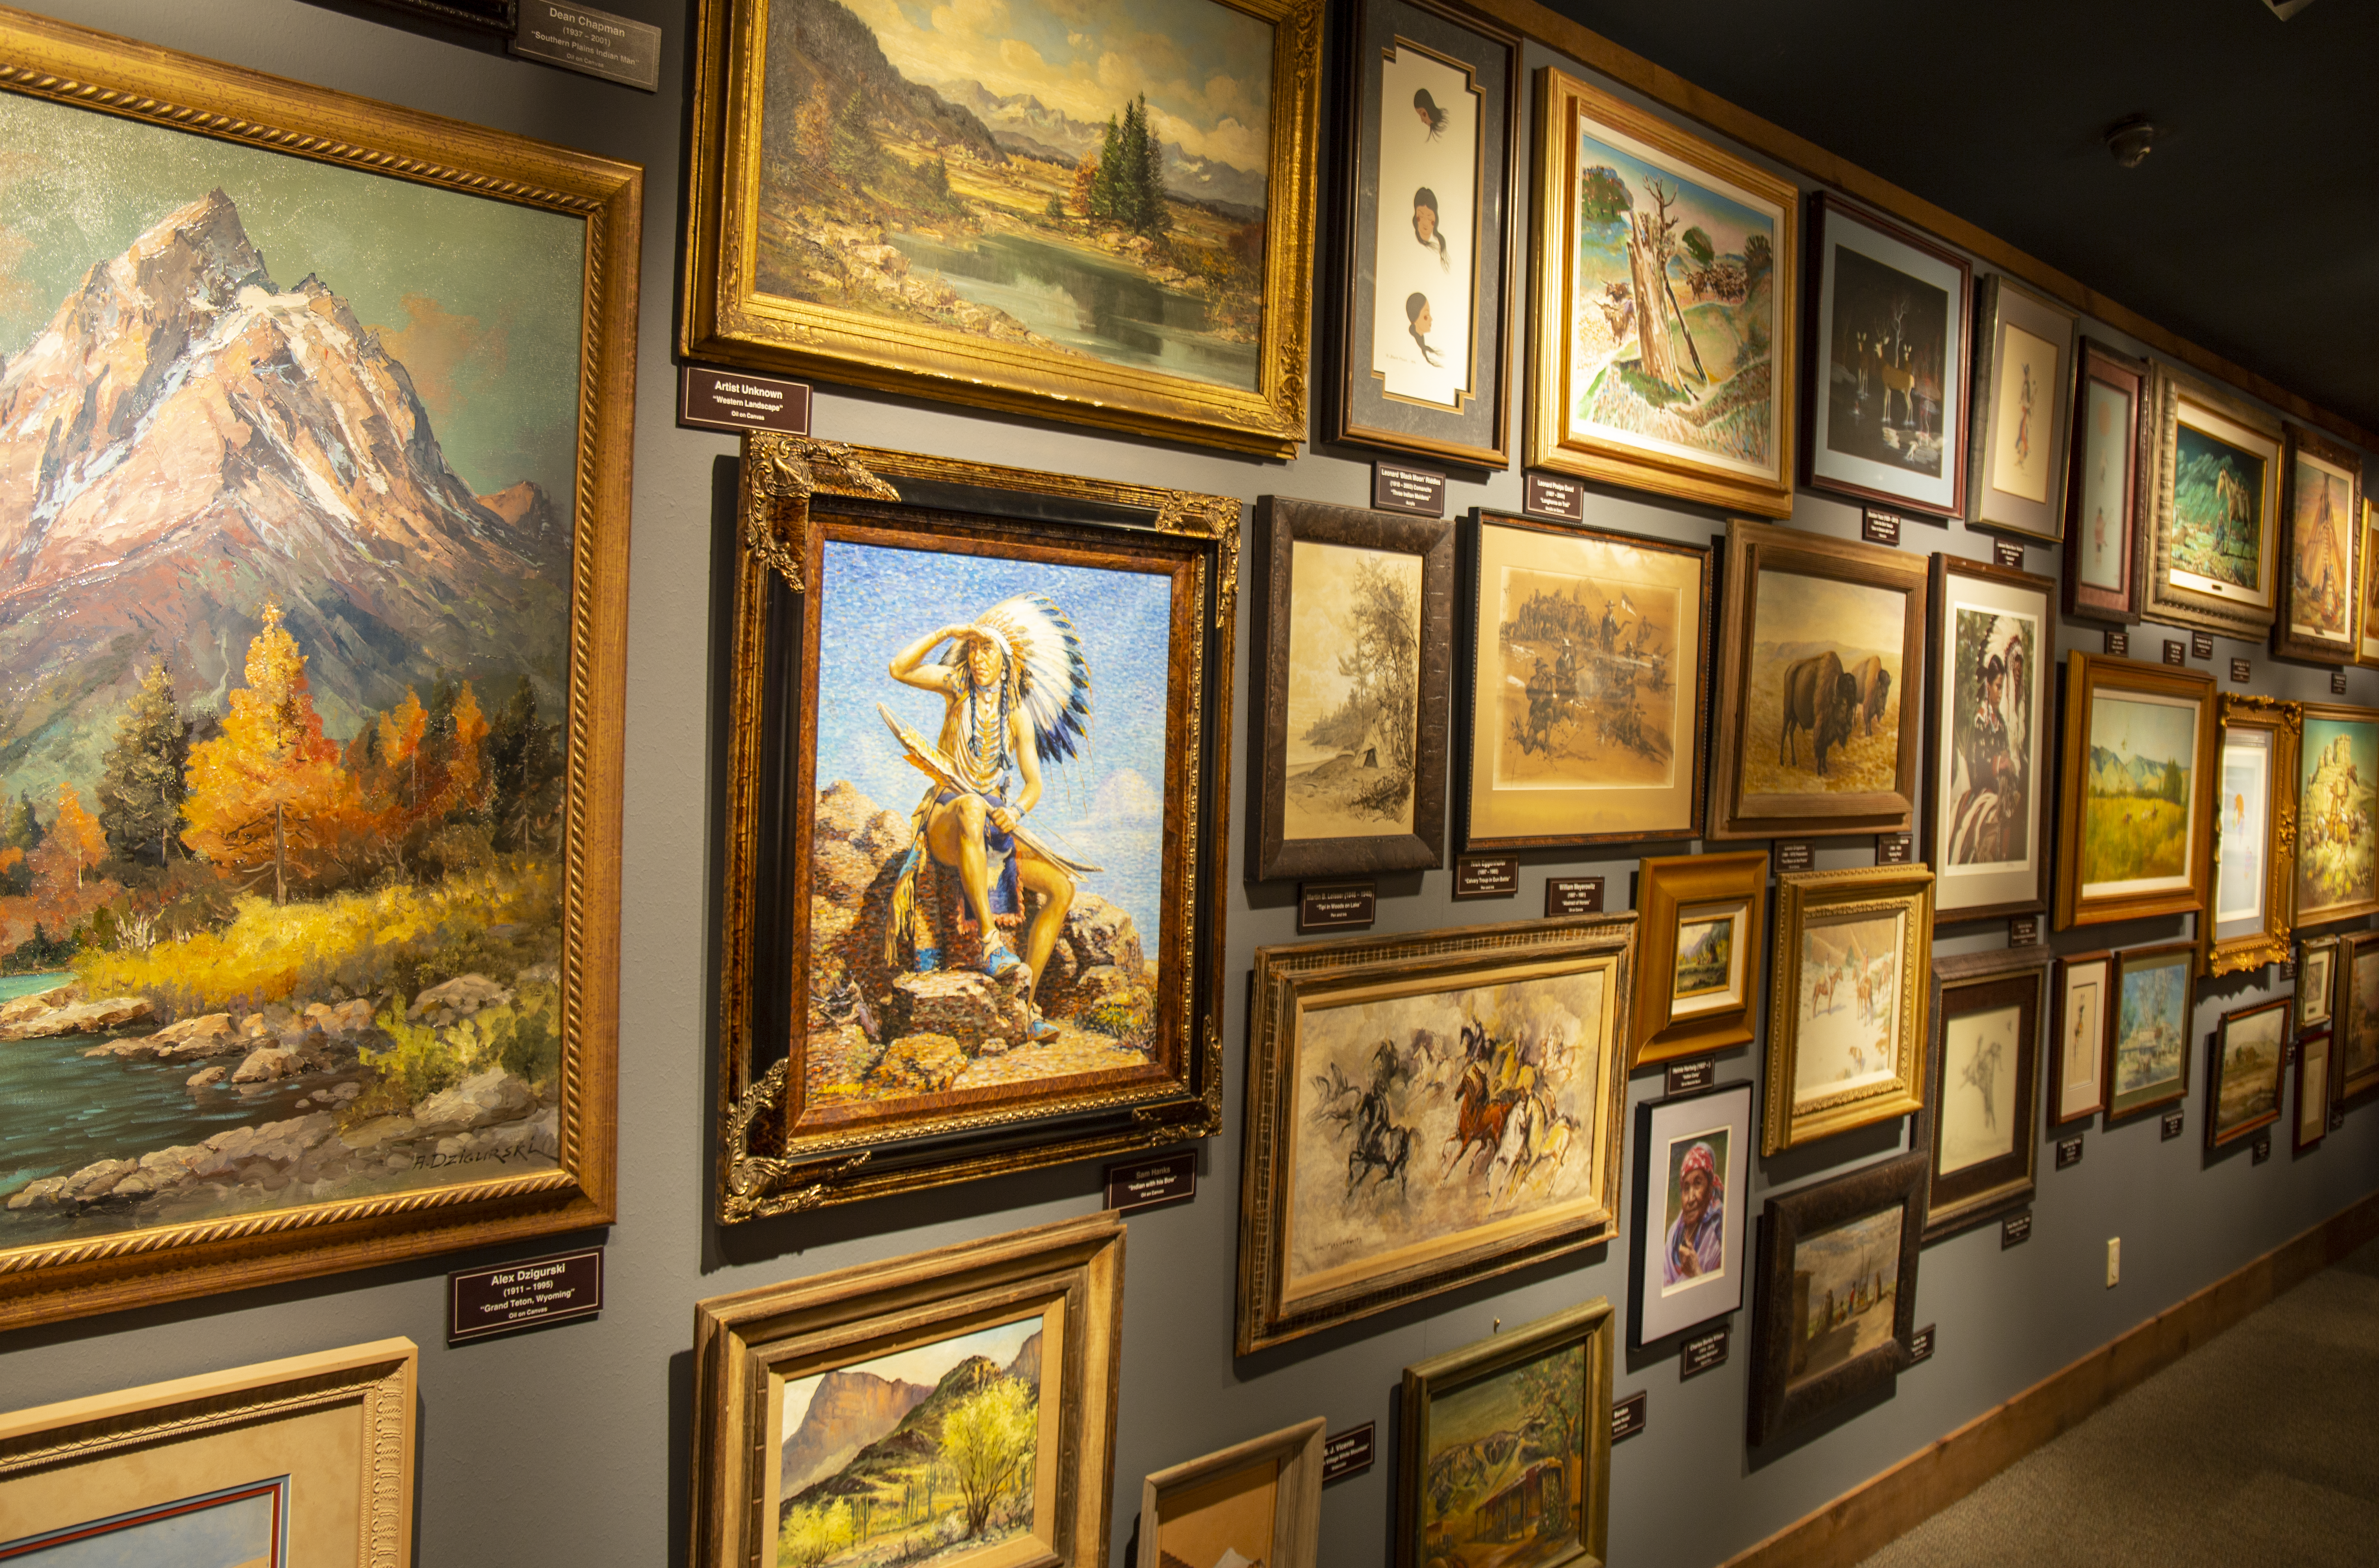 Foundations of art on display at the Chisholm Trail Heritage Center